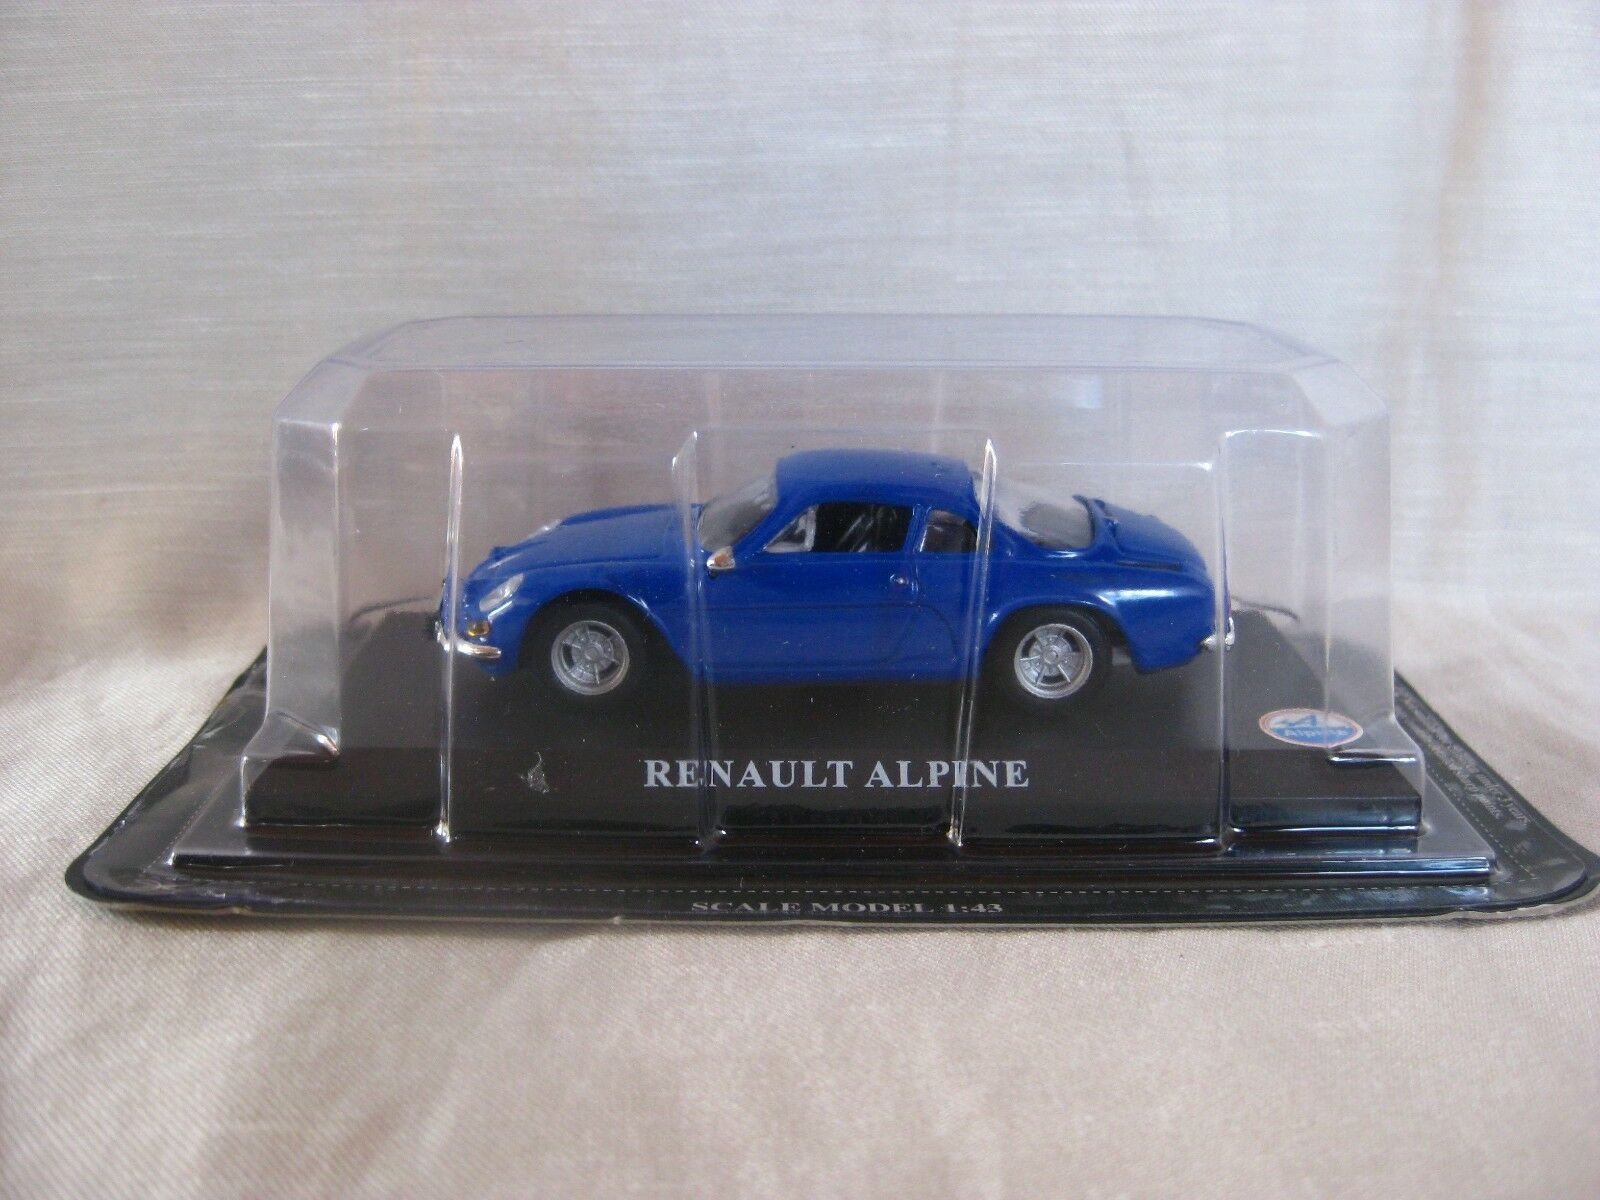 RENAULT ALPINE bleu 1 43 DIE CAST MODEL 20th Siècle Grande voitures collection